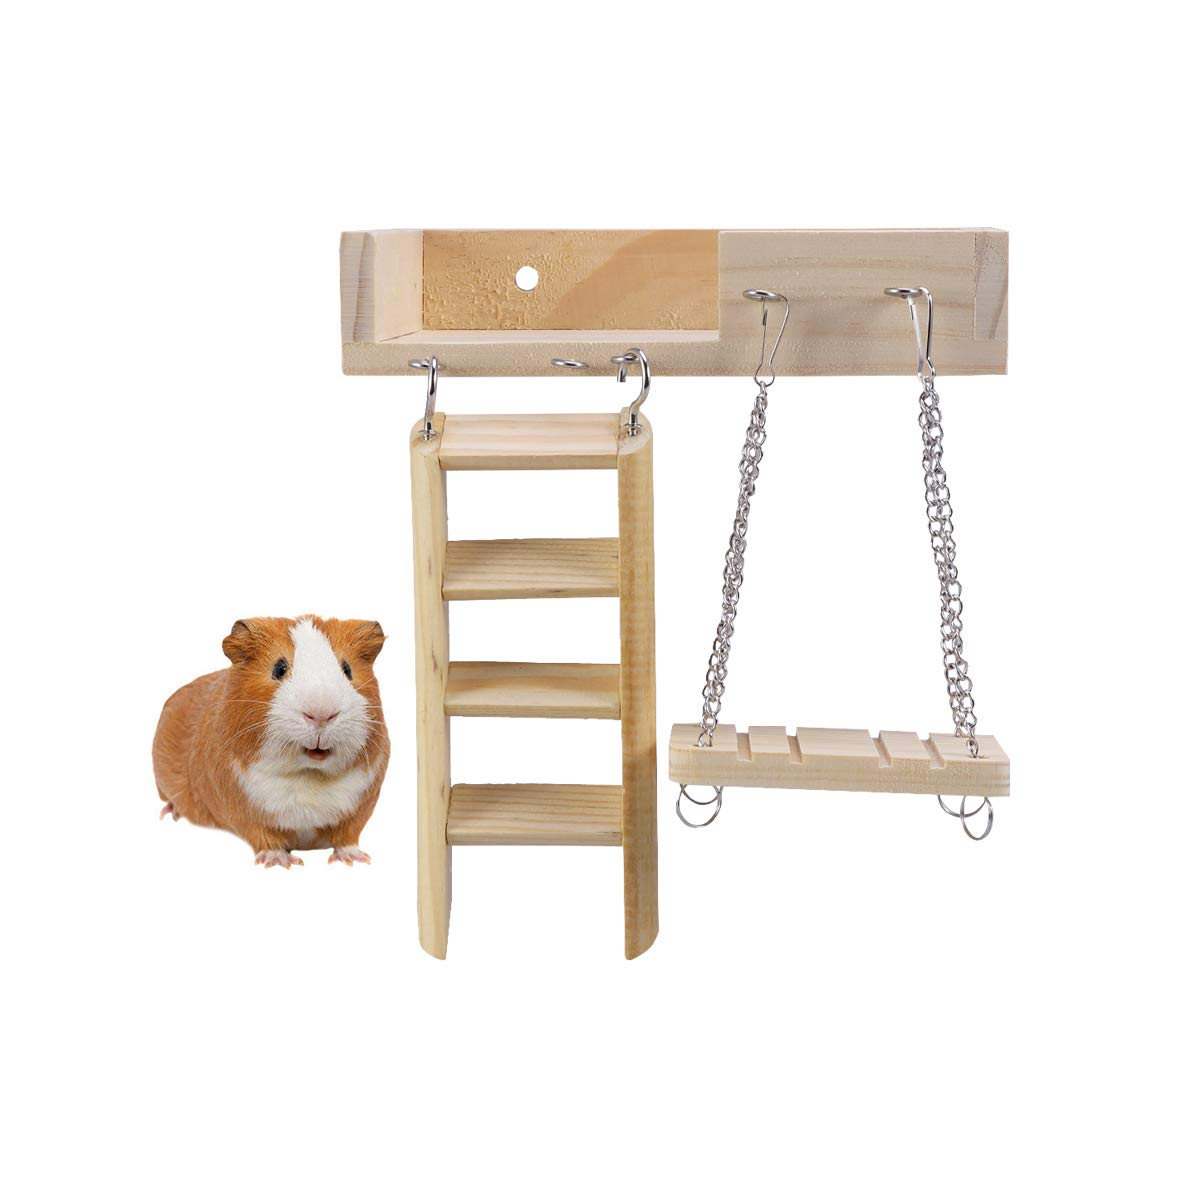 POPETPOP Hamster Platform with Swing-3 Pack Wooden Swing, Ladder and Lookout Platform Set for Mouse, Chinchilla, Rat, Gerbil and Dwarf Hamster by POPETPOP